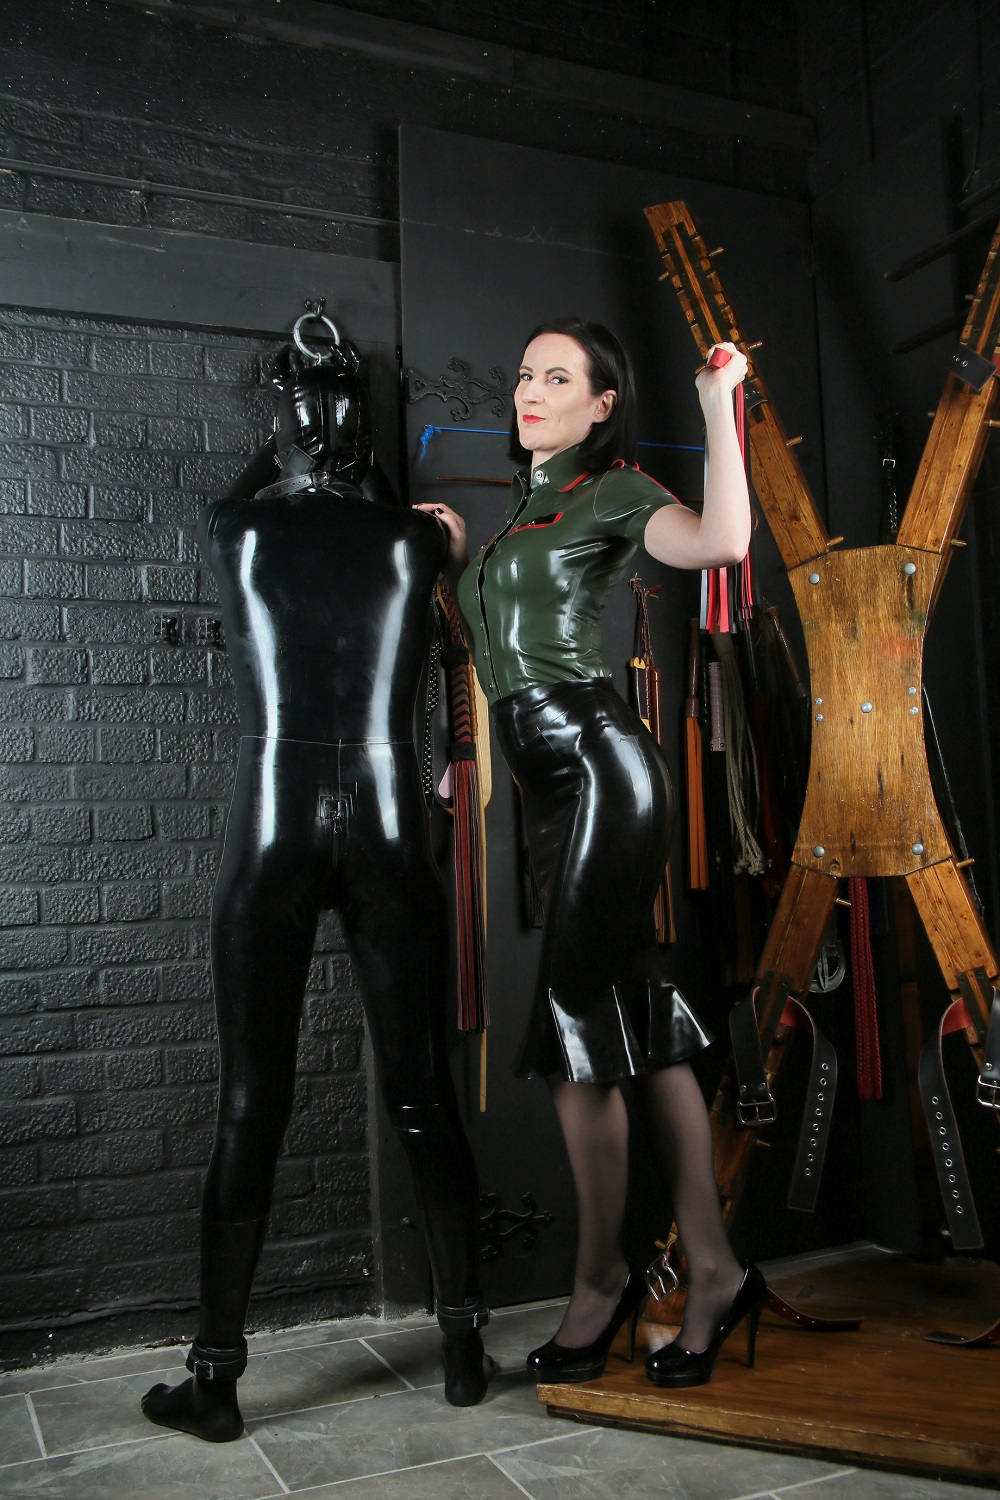 The costume party cuckhold femdom story